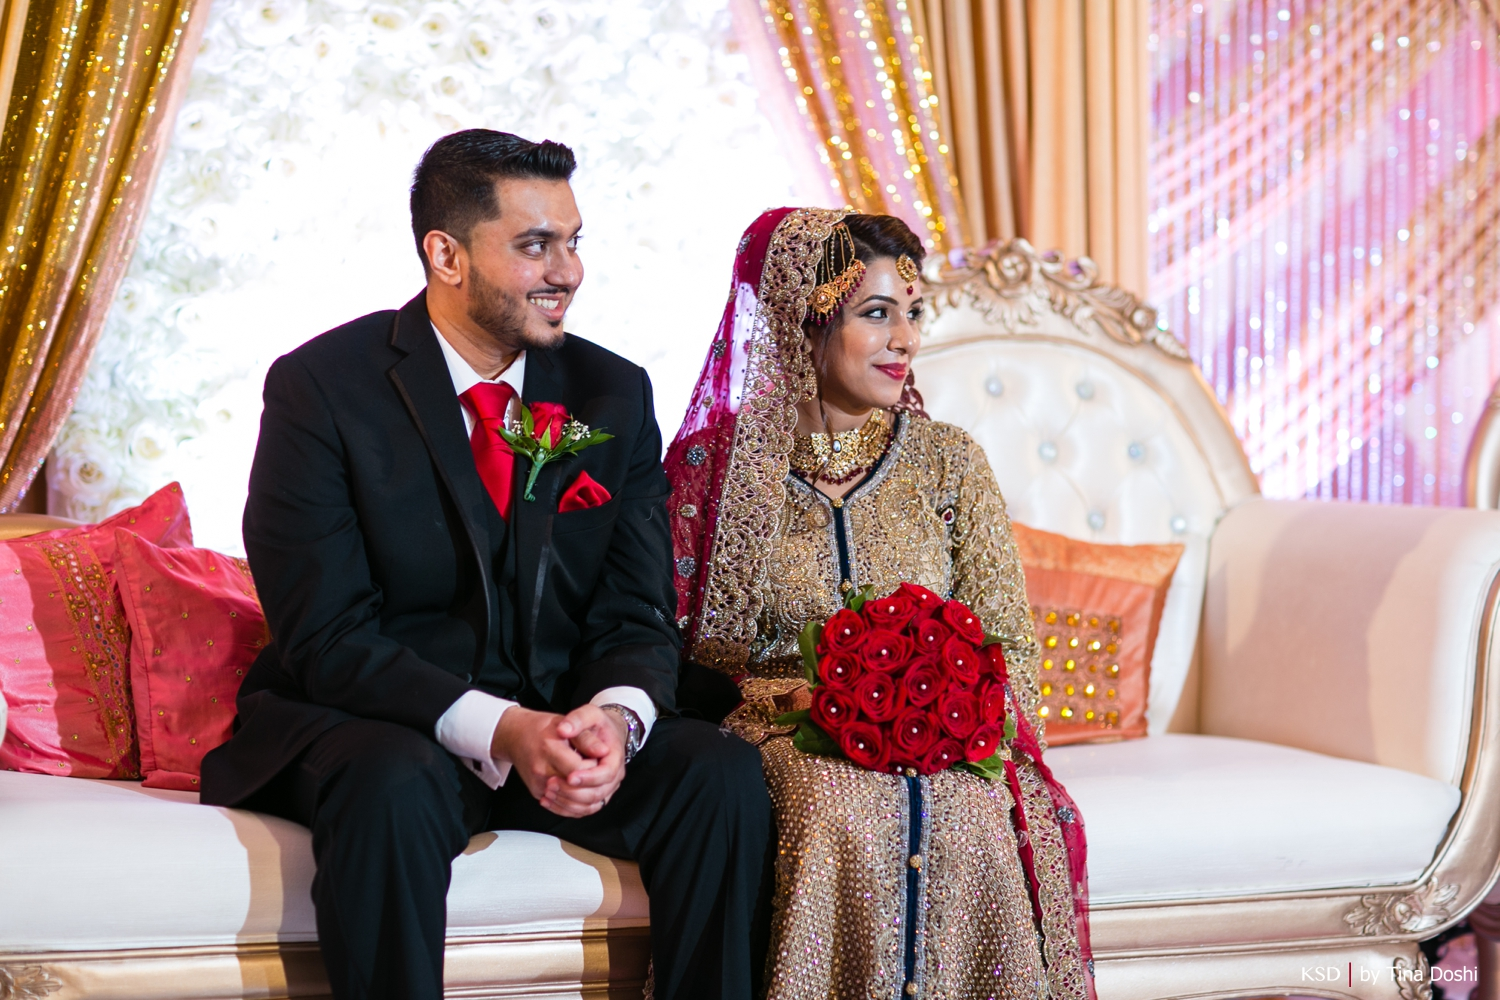 nj_south_asian_wedding_0118